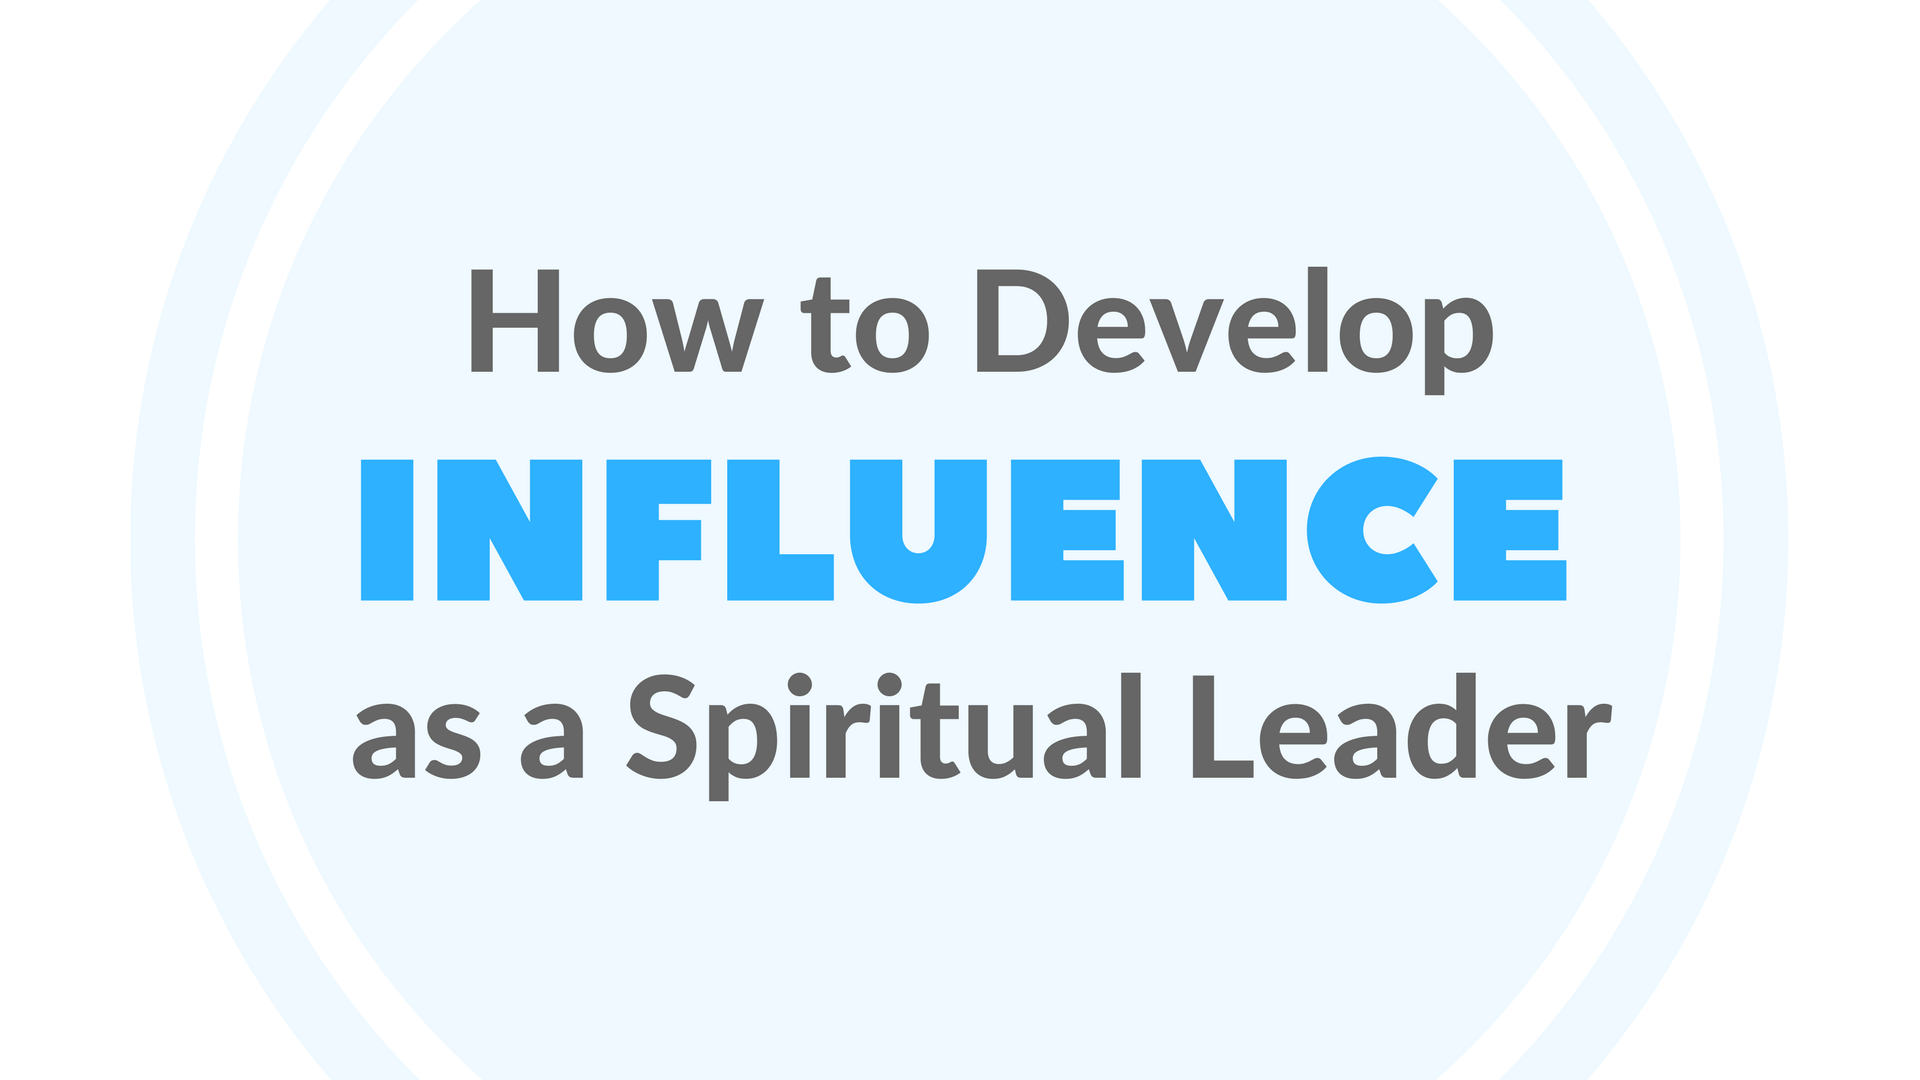 How to Develop Influence as a Spiritual Leader